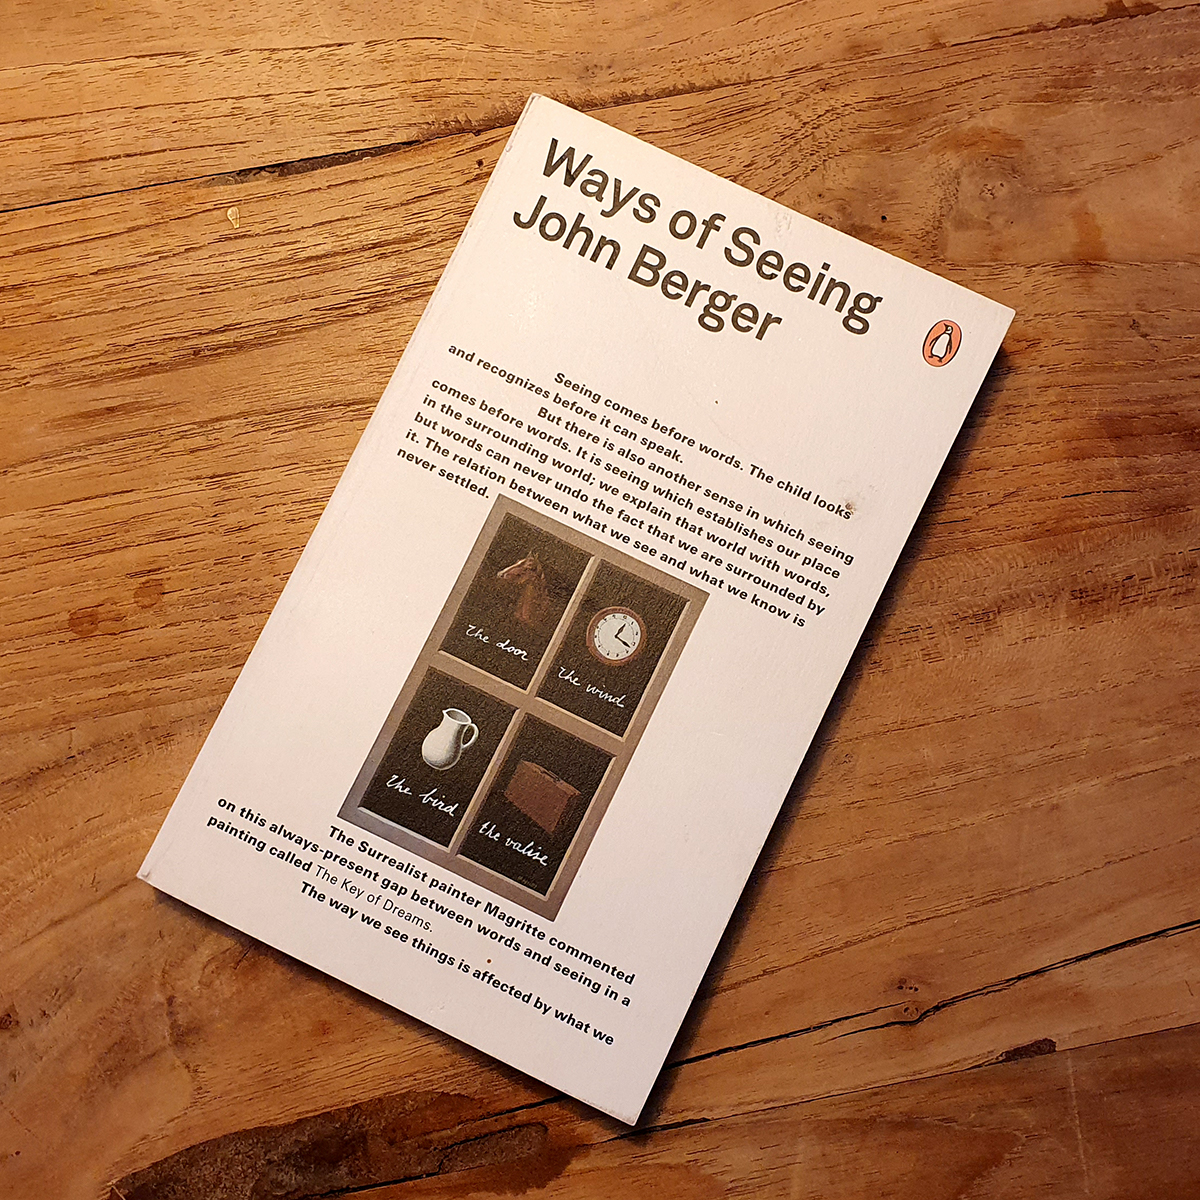 Boek Ways of Seeing - John Berger